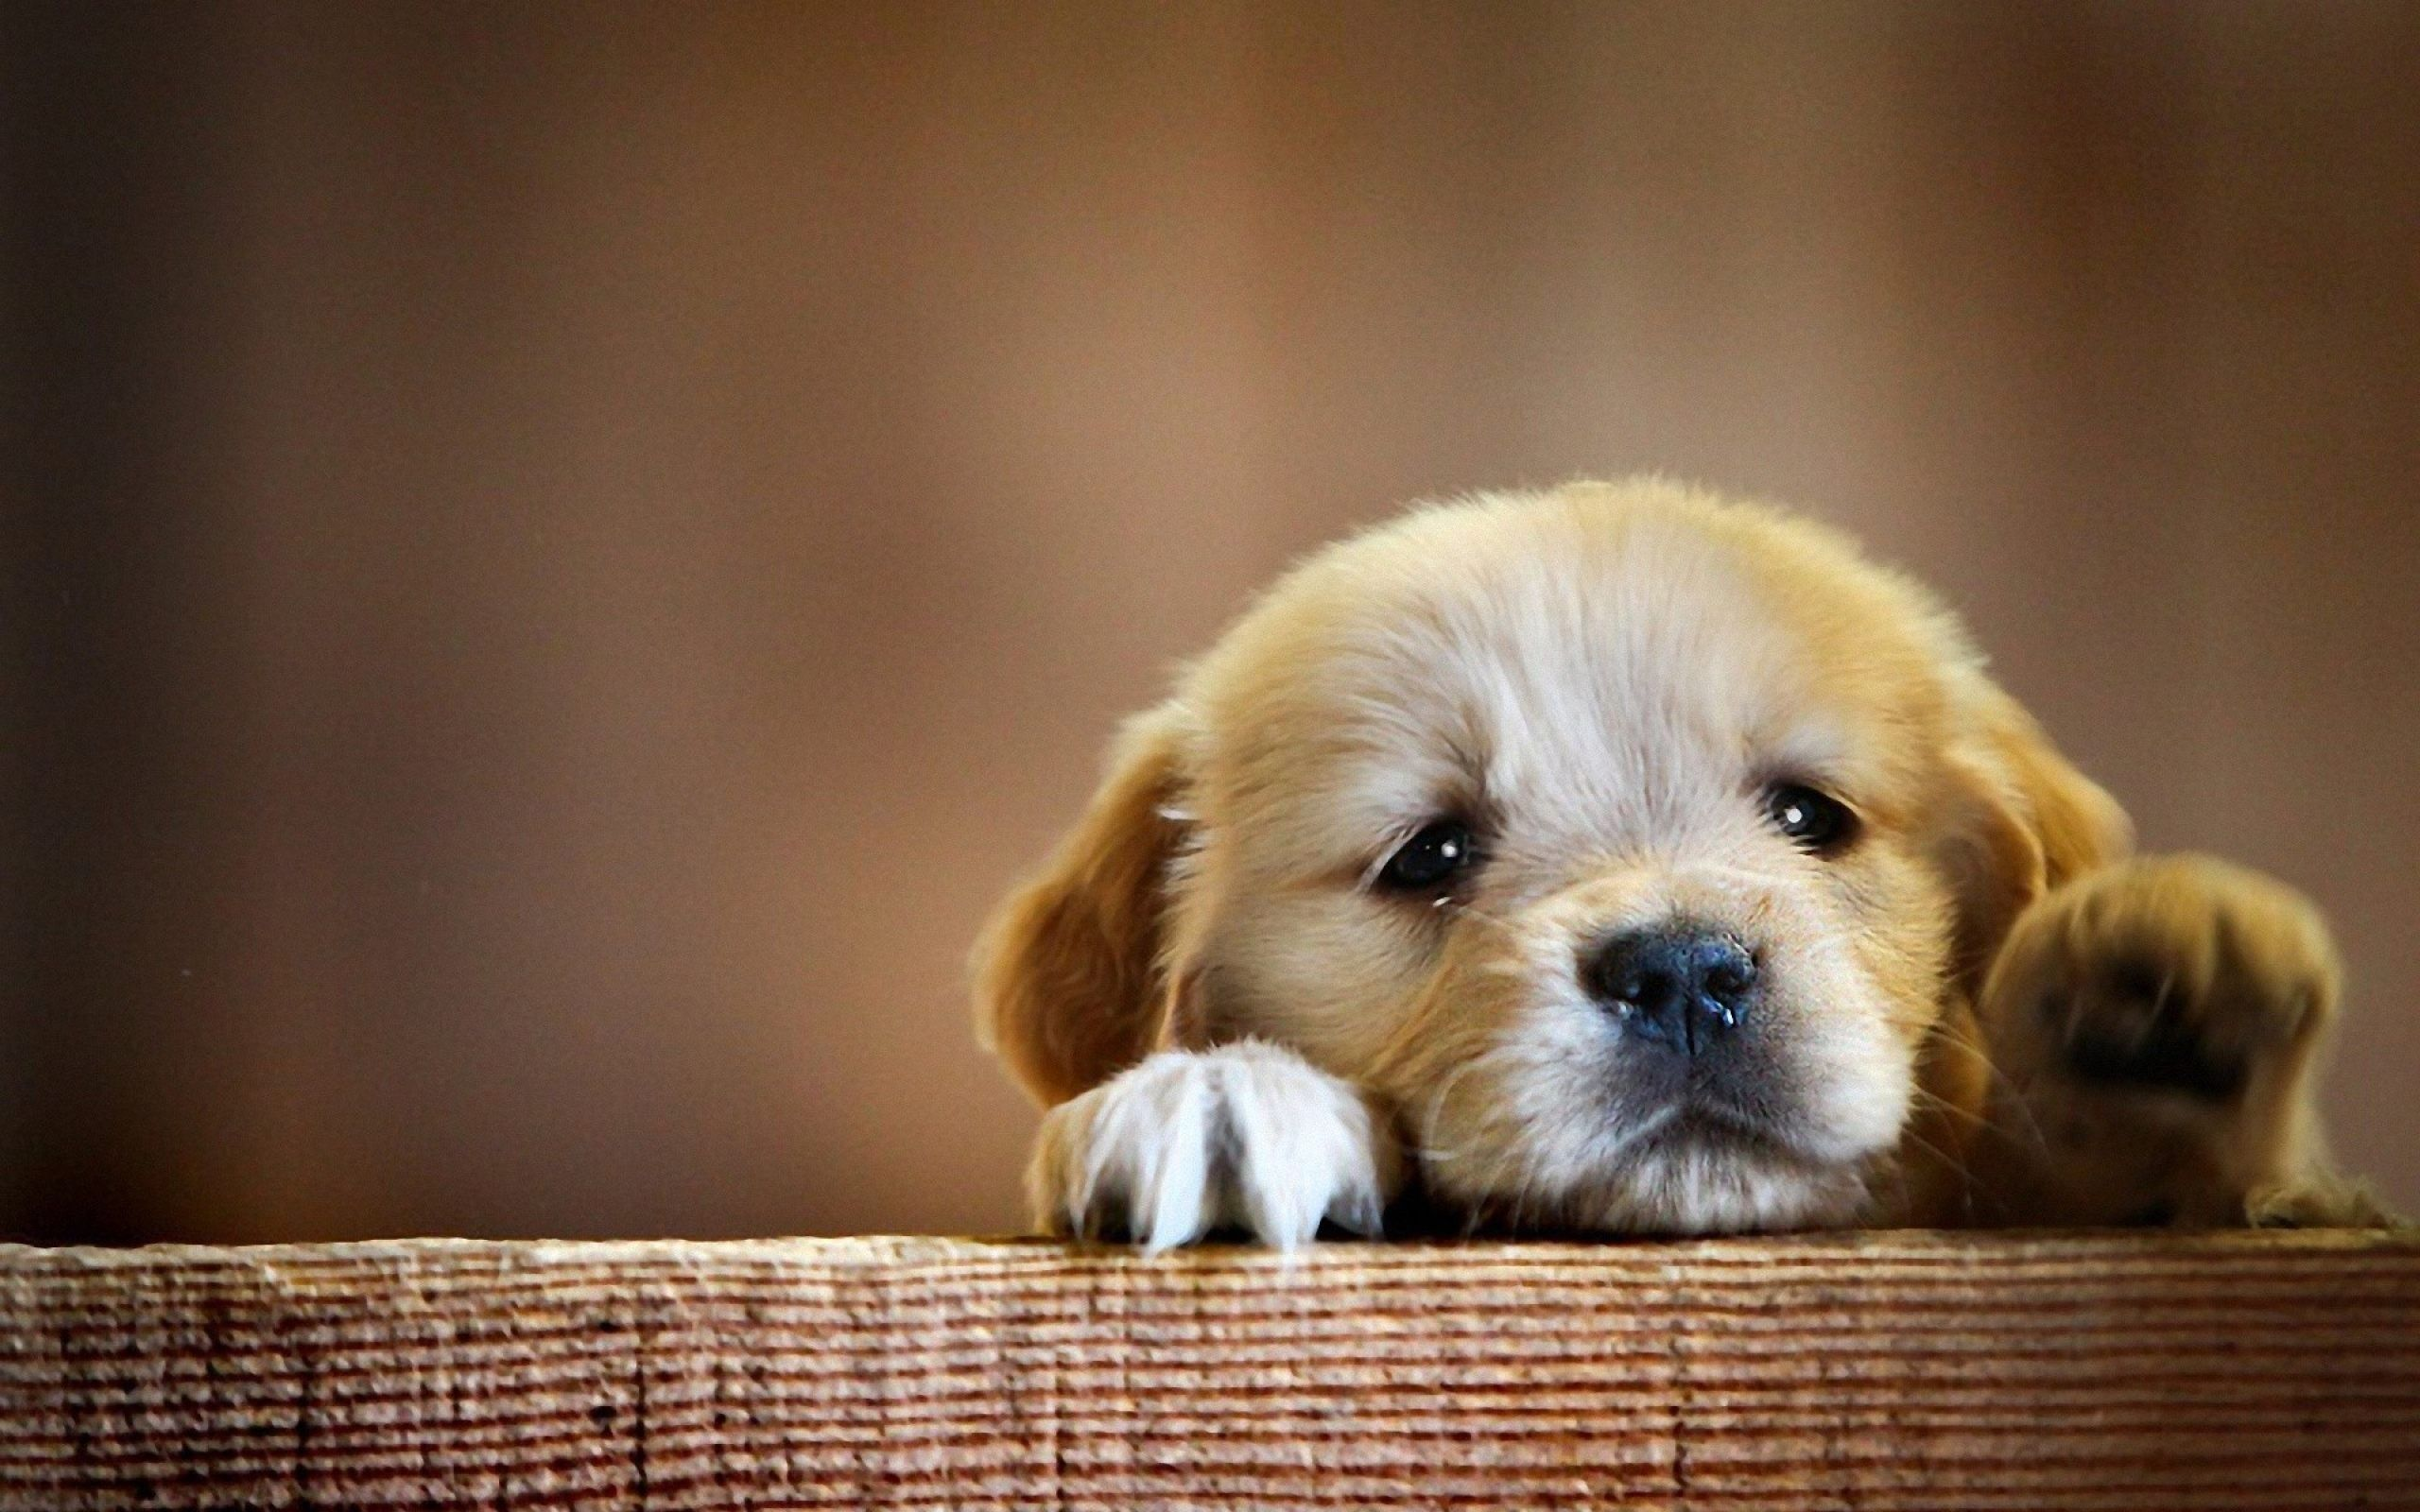 Cute Sad Puppy Wallpapers On Wallpaperdog